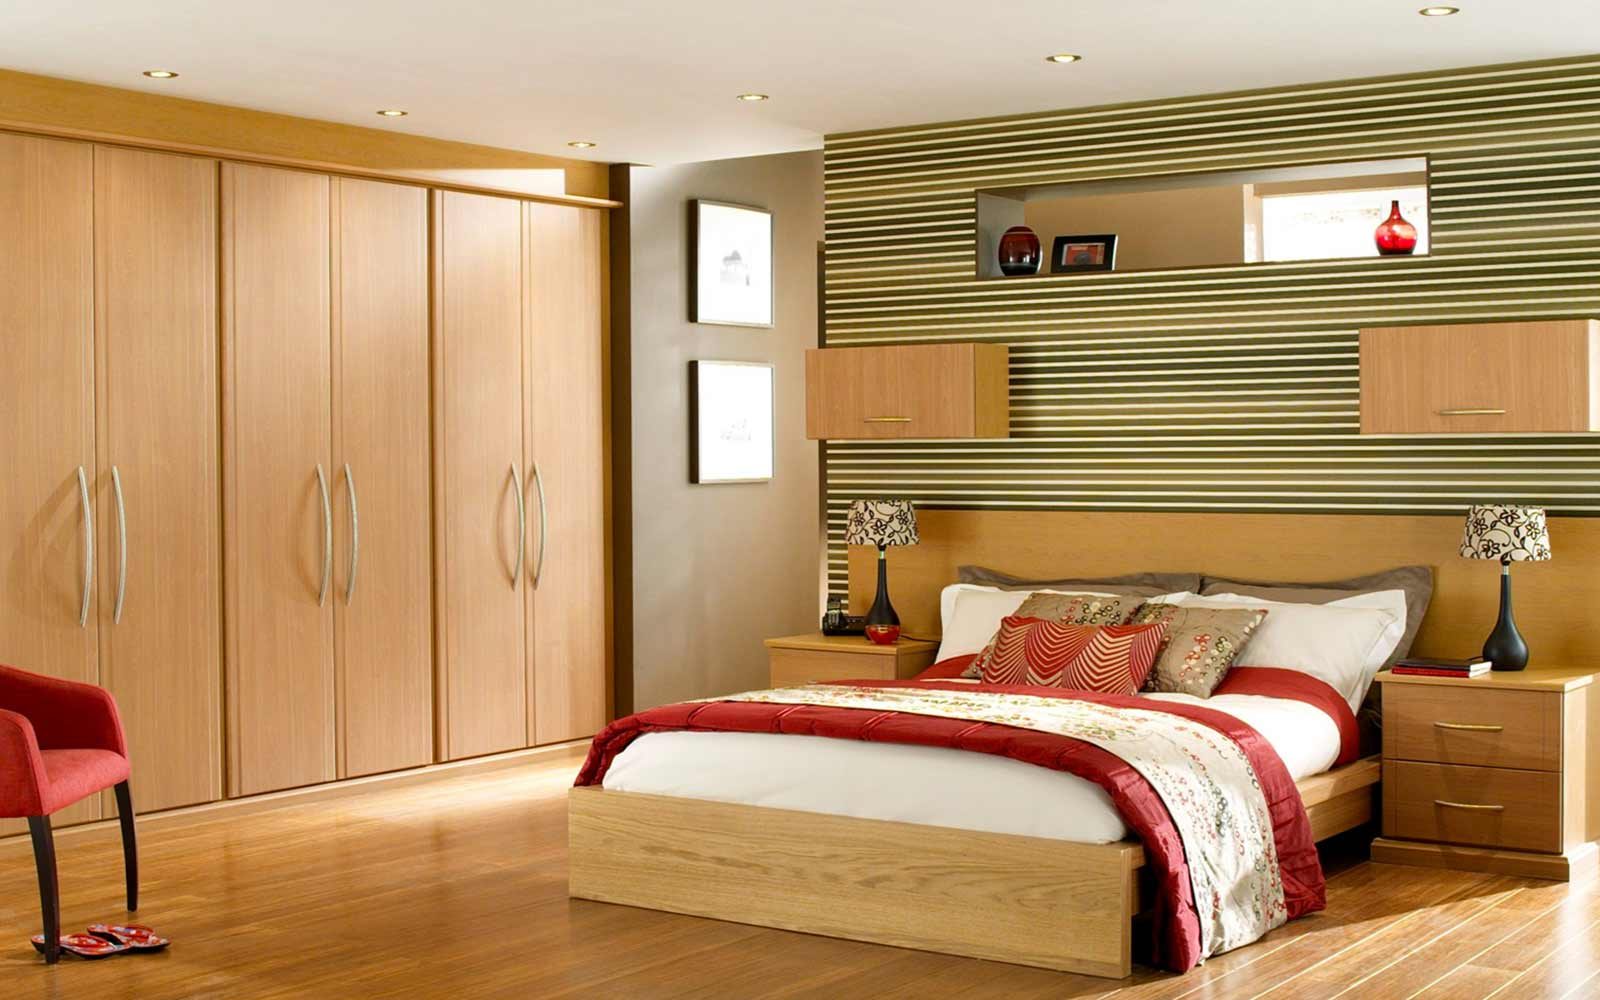 35 images of wardrobe designs for bedrooms for Bedroom designs images